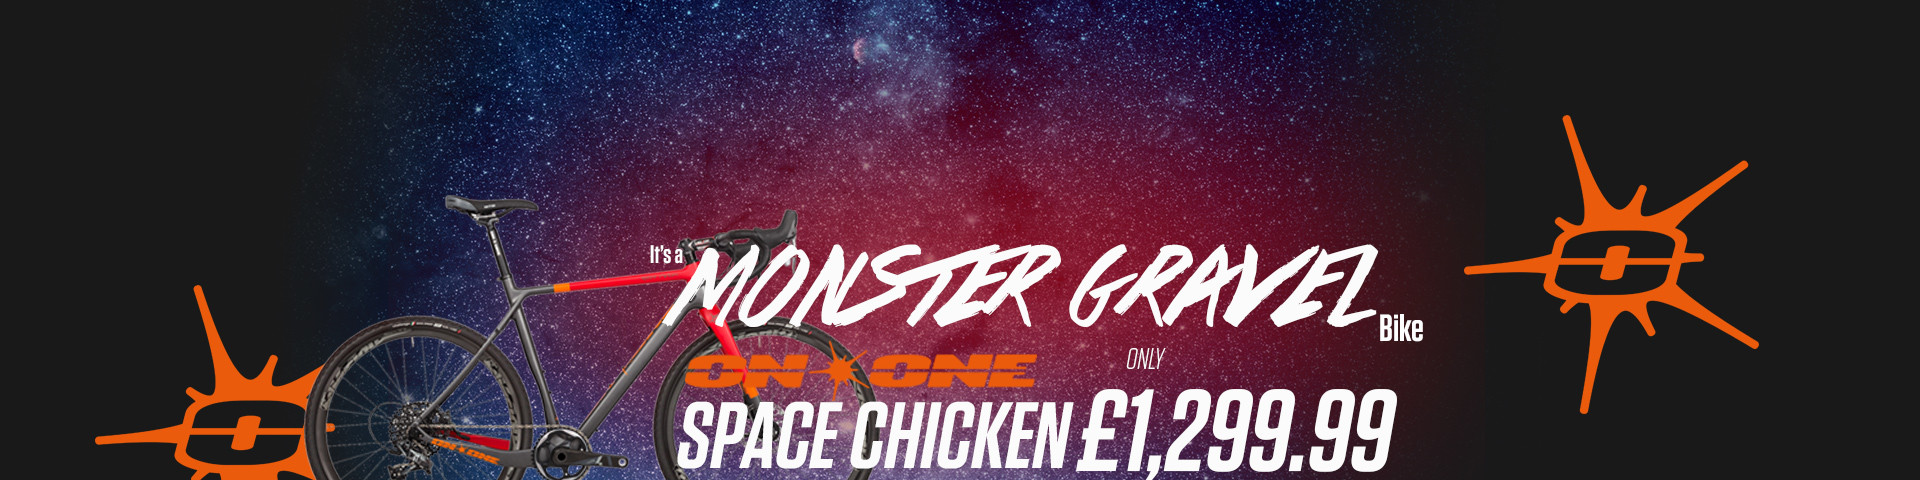 Space Chickens now from 1299.99